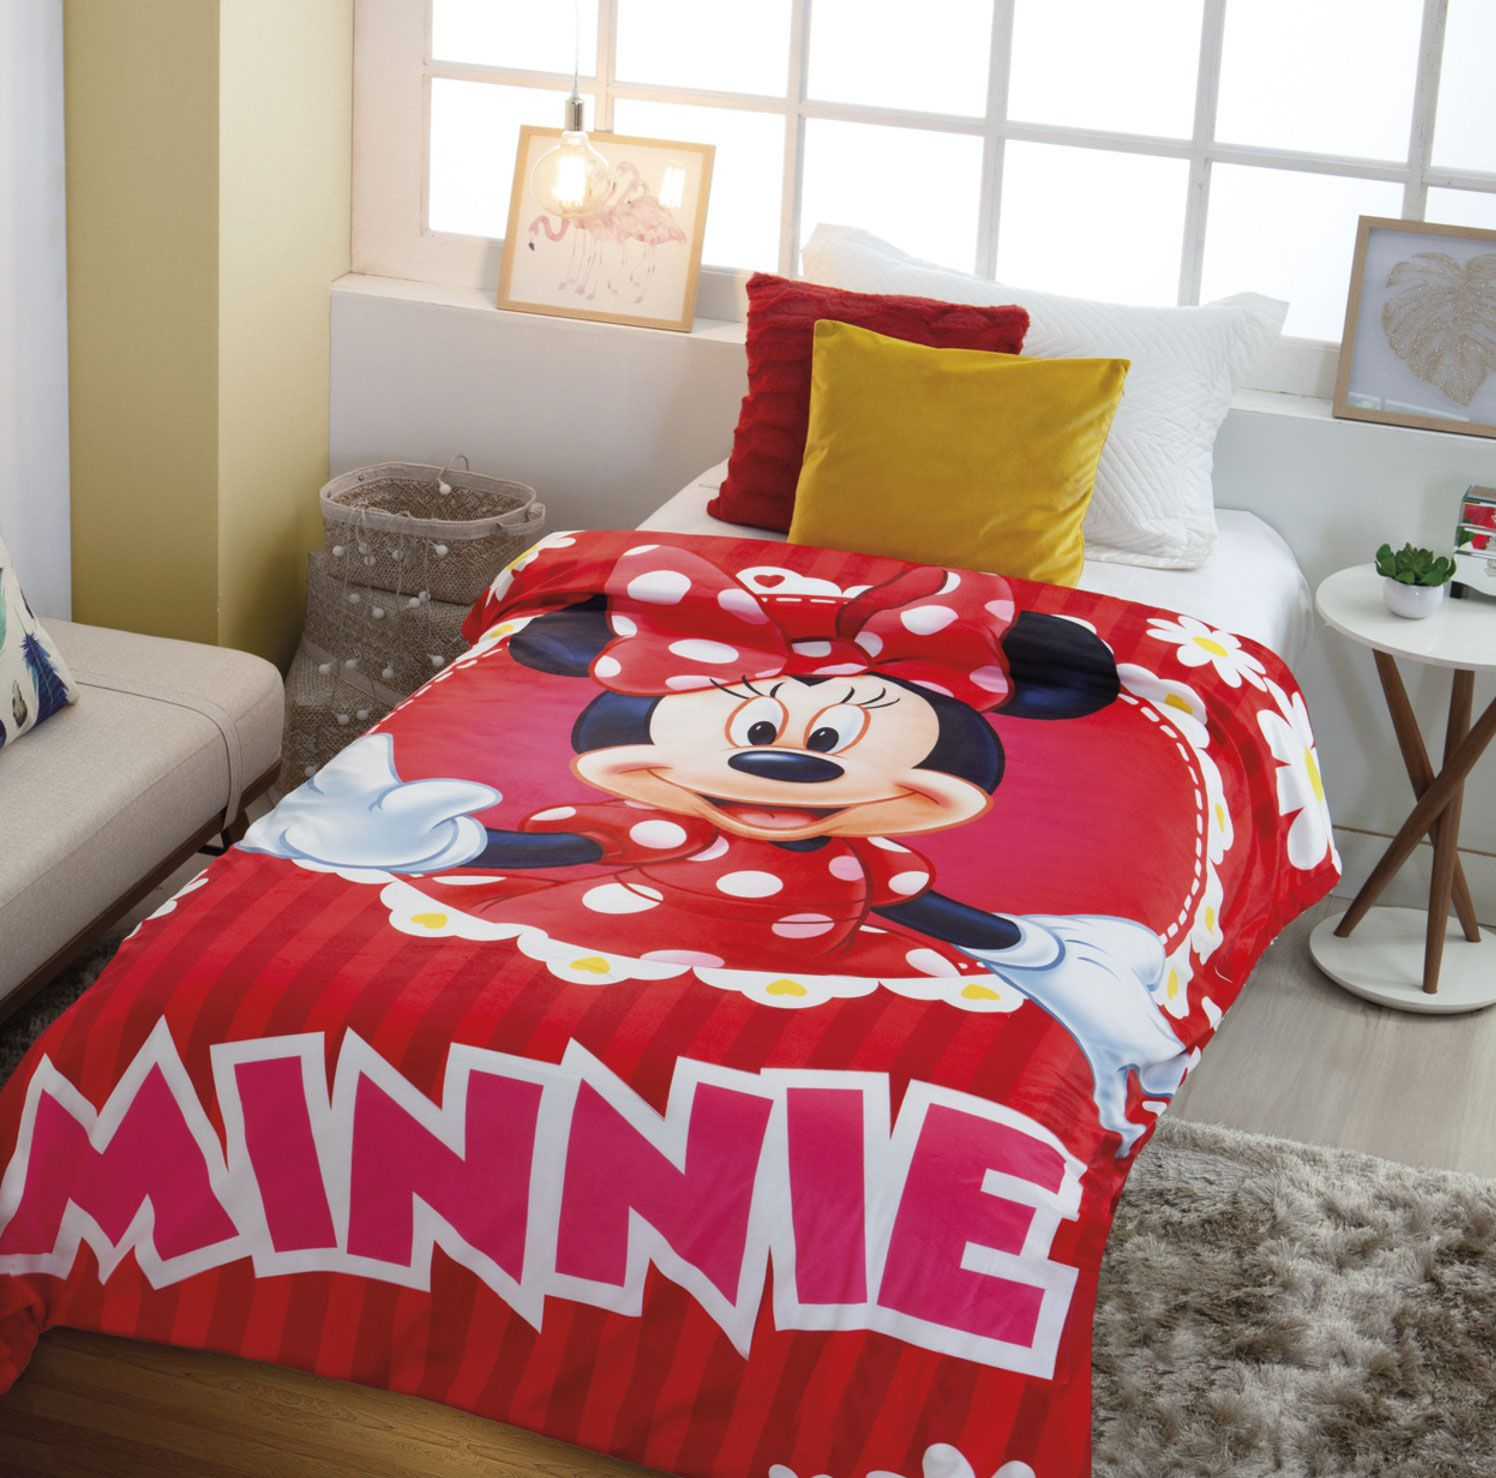 COBERTOR JUVENIL DIGITAL HD SHERPA MINNIE JOLITEX REF:55008 1,50M X 2,00M